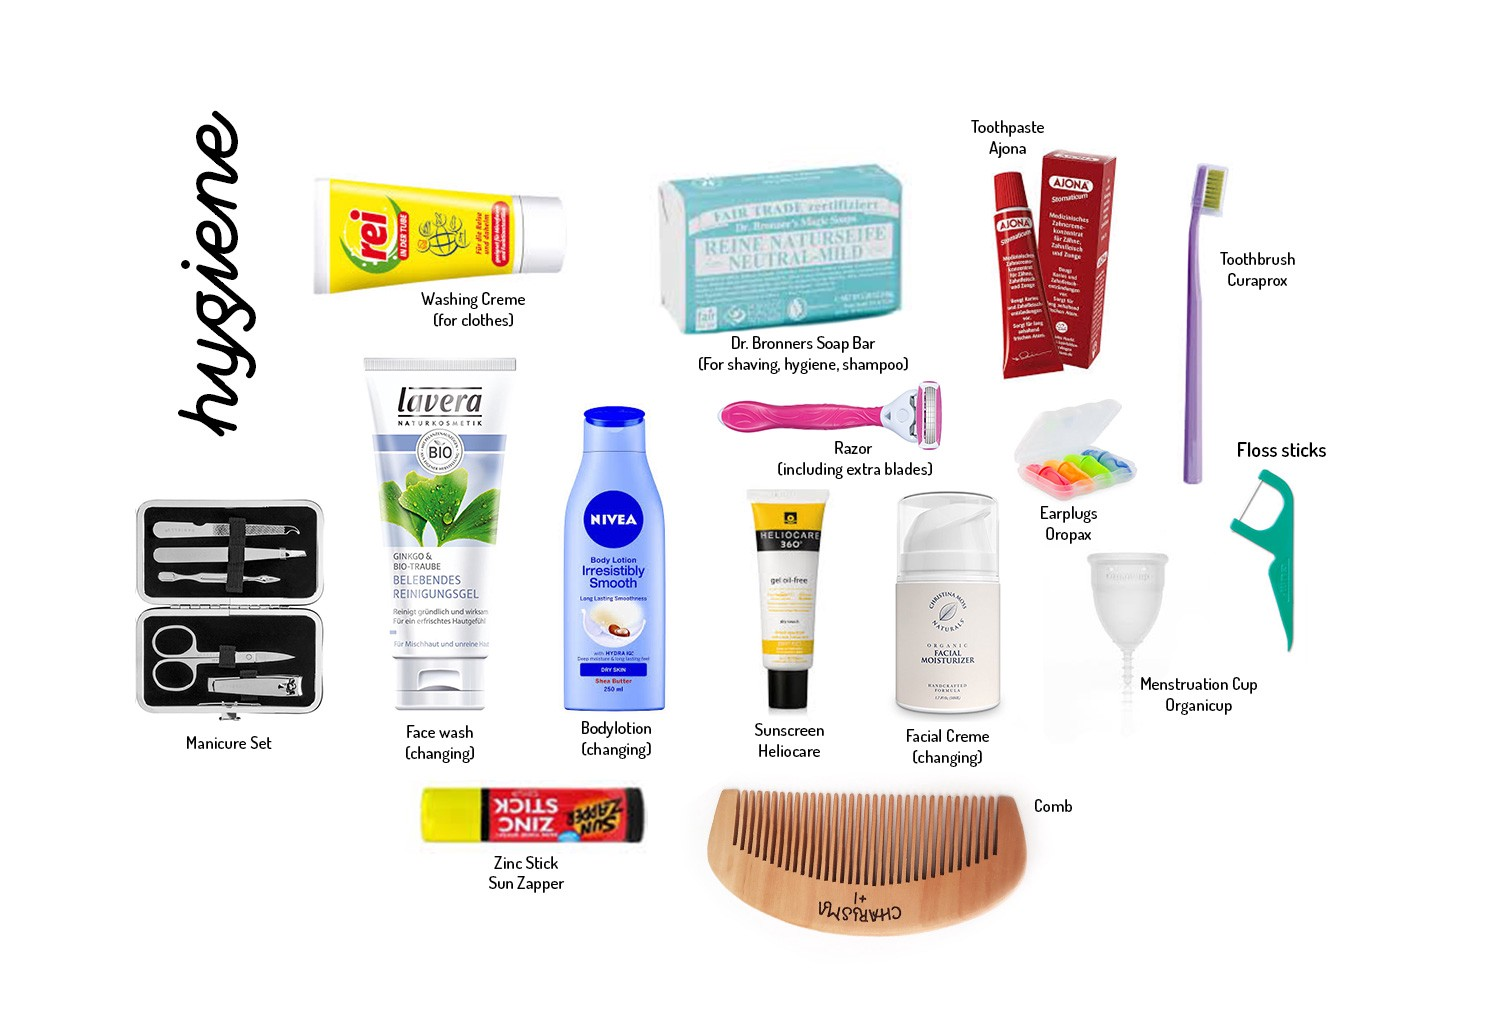 Hygiene/Cosmetics Packing List